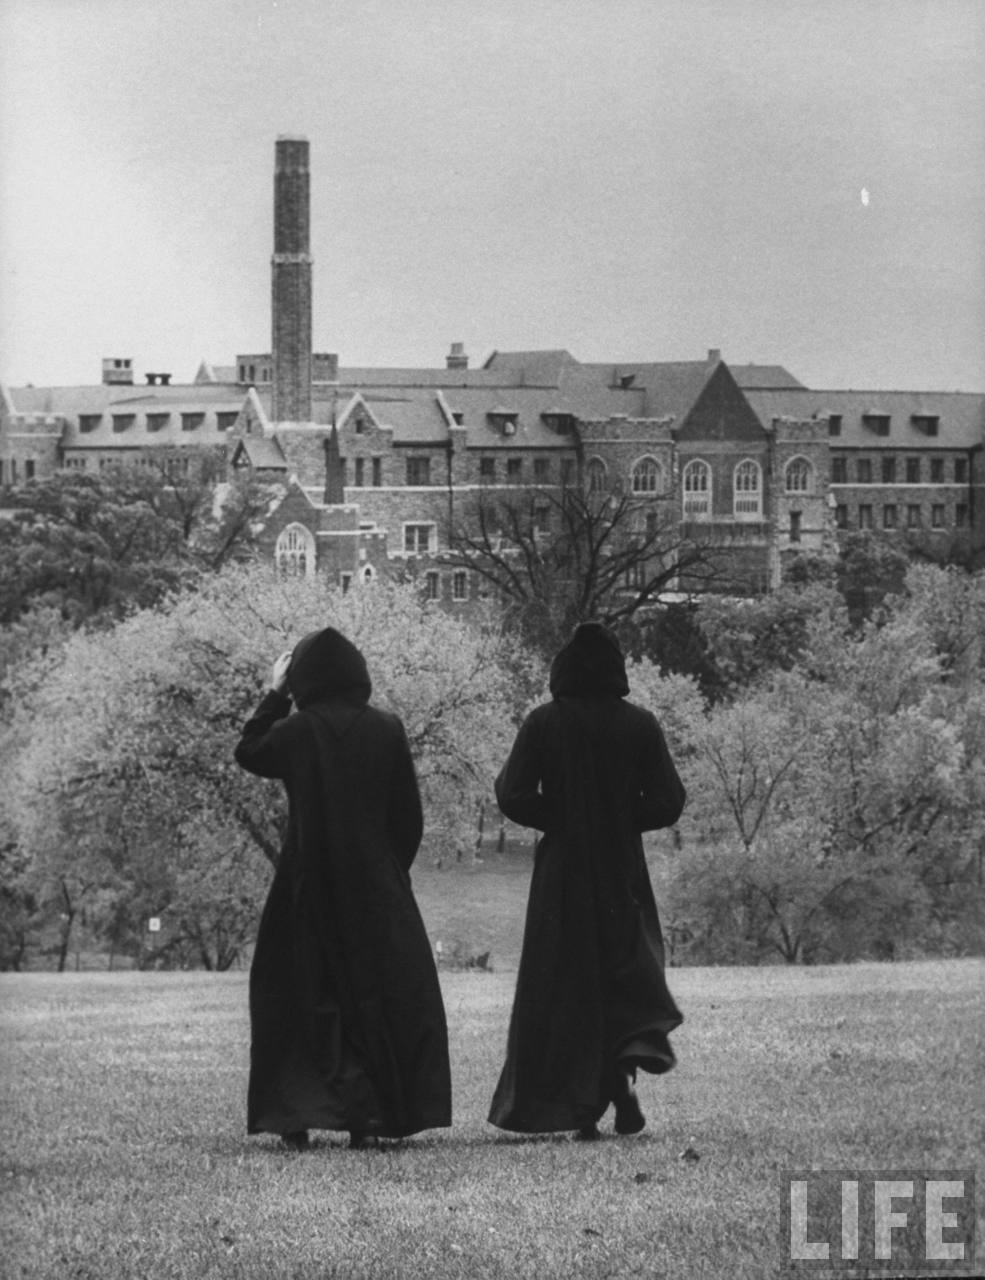 Monks outside monastery, at St. Benedict's Abbey.